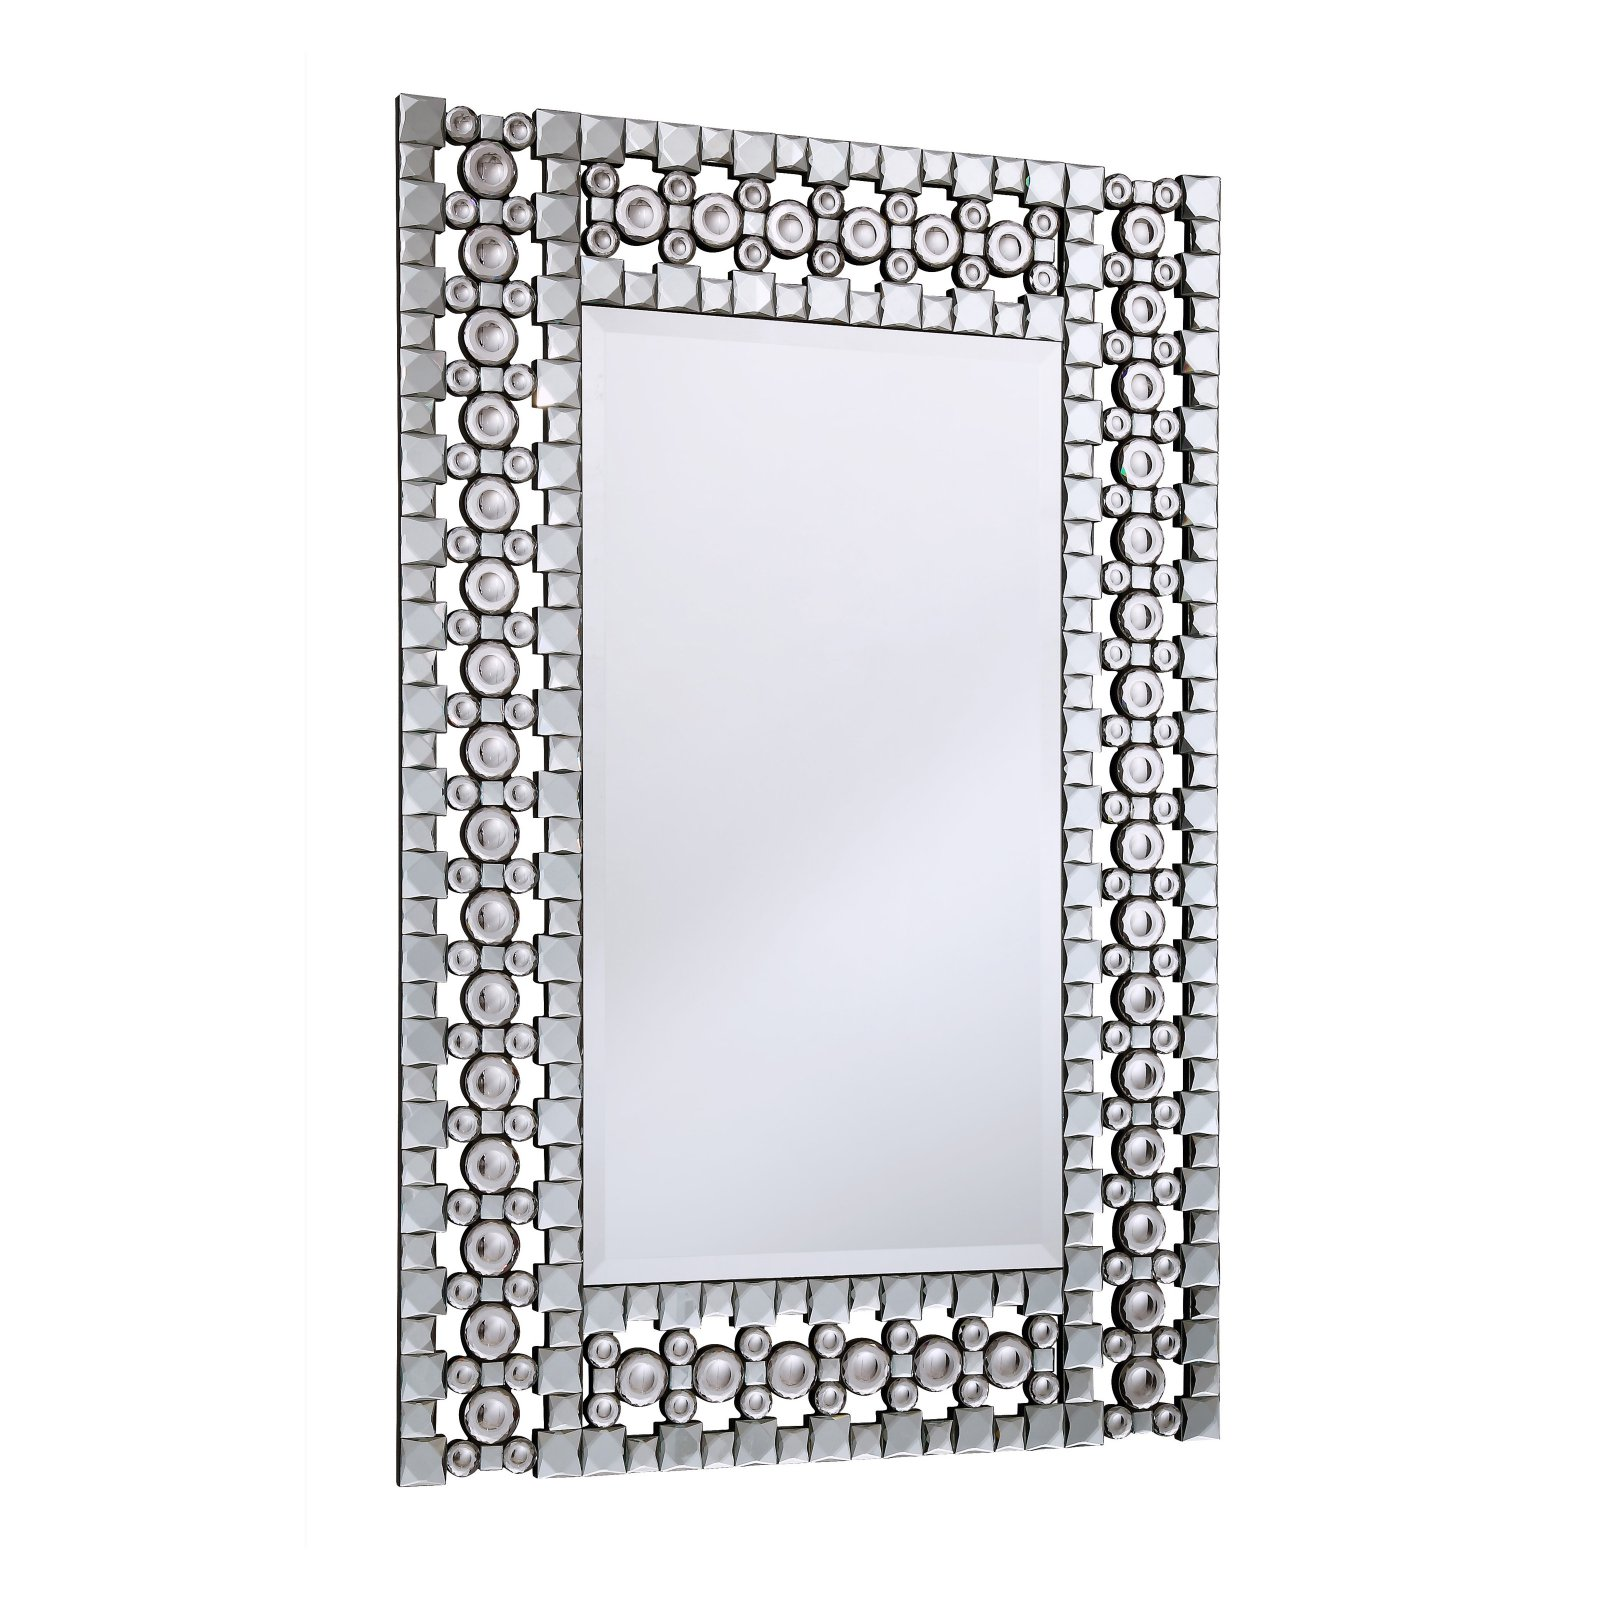 Elegant Furniture & Lighting Modern Wall Mirror - 30.75W x 45.78H in.